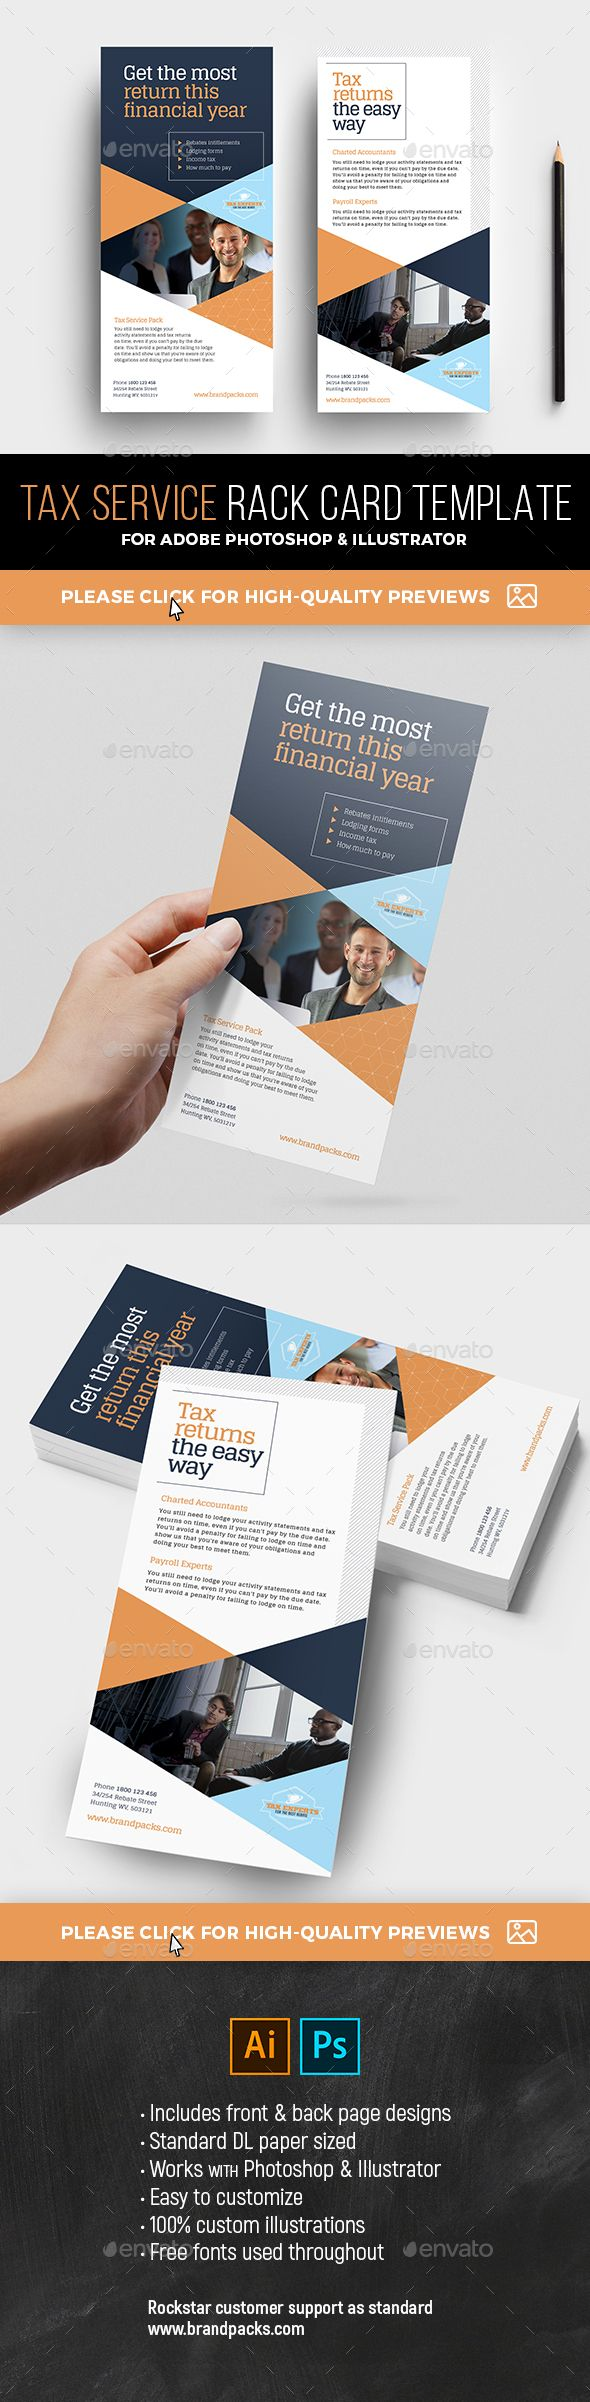 DL Tax Service Rack Card Template A DL rack card template in